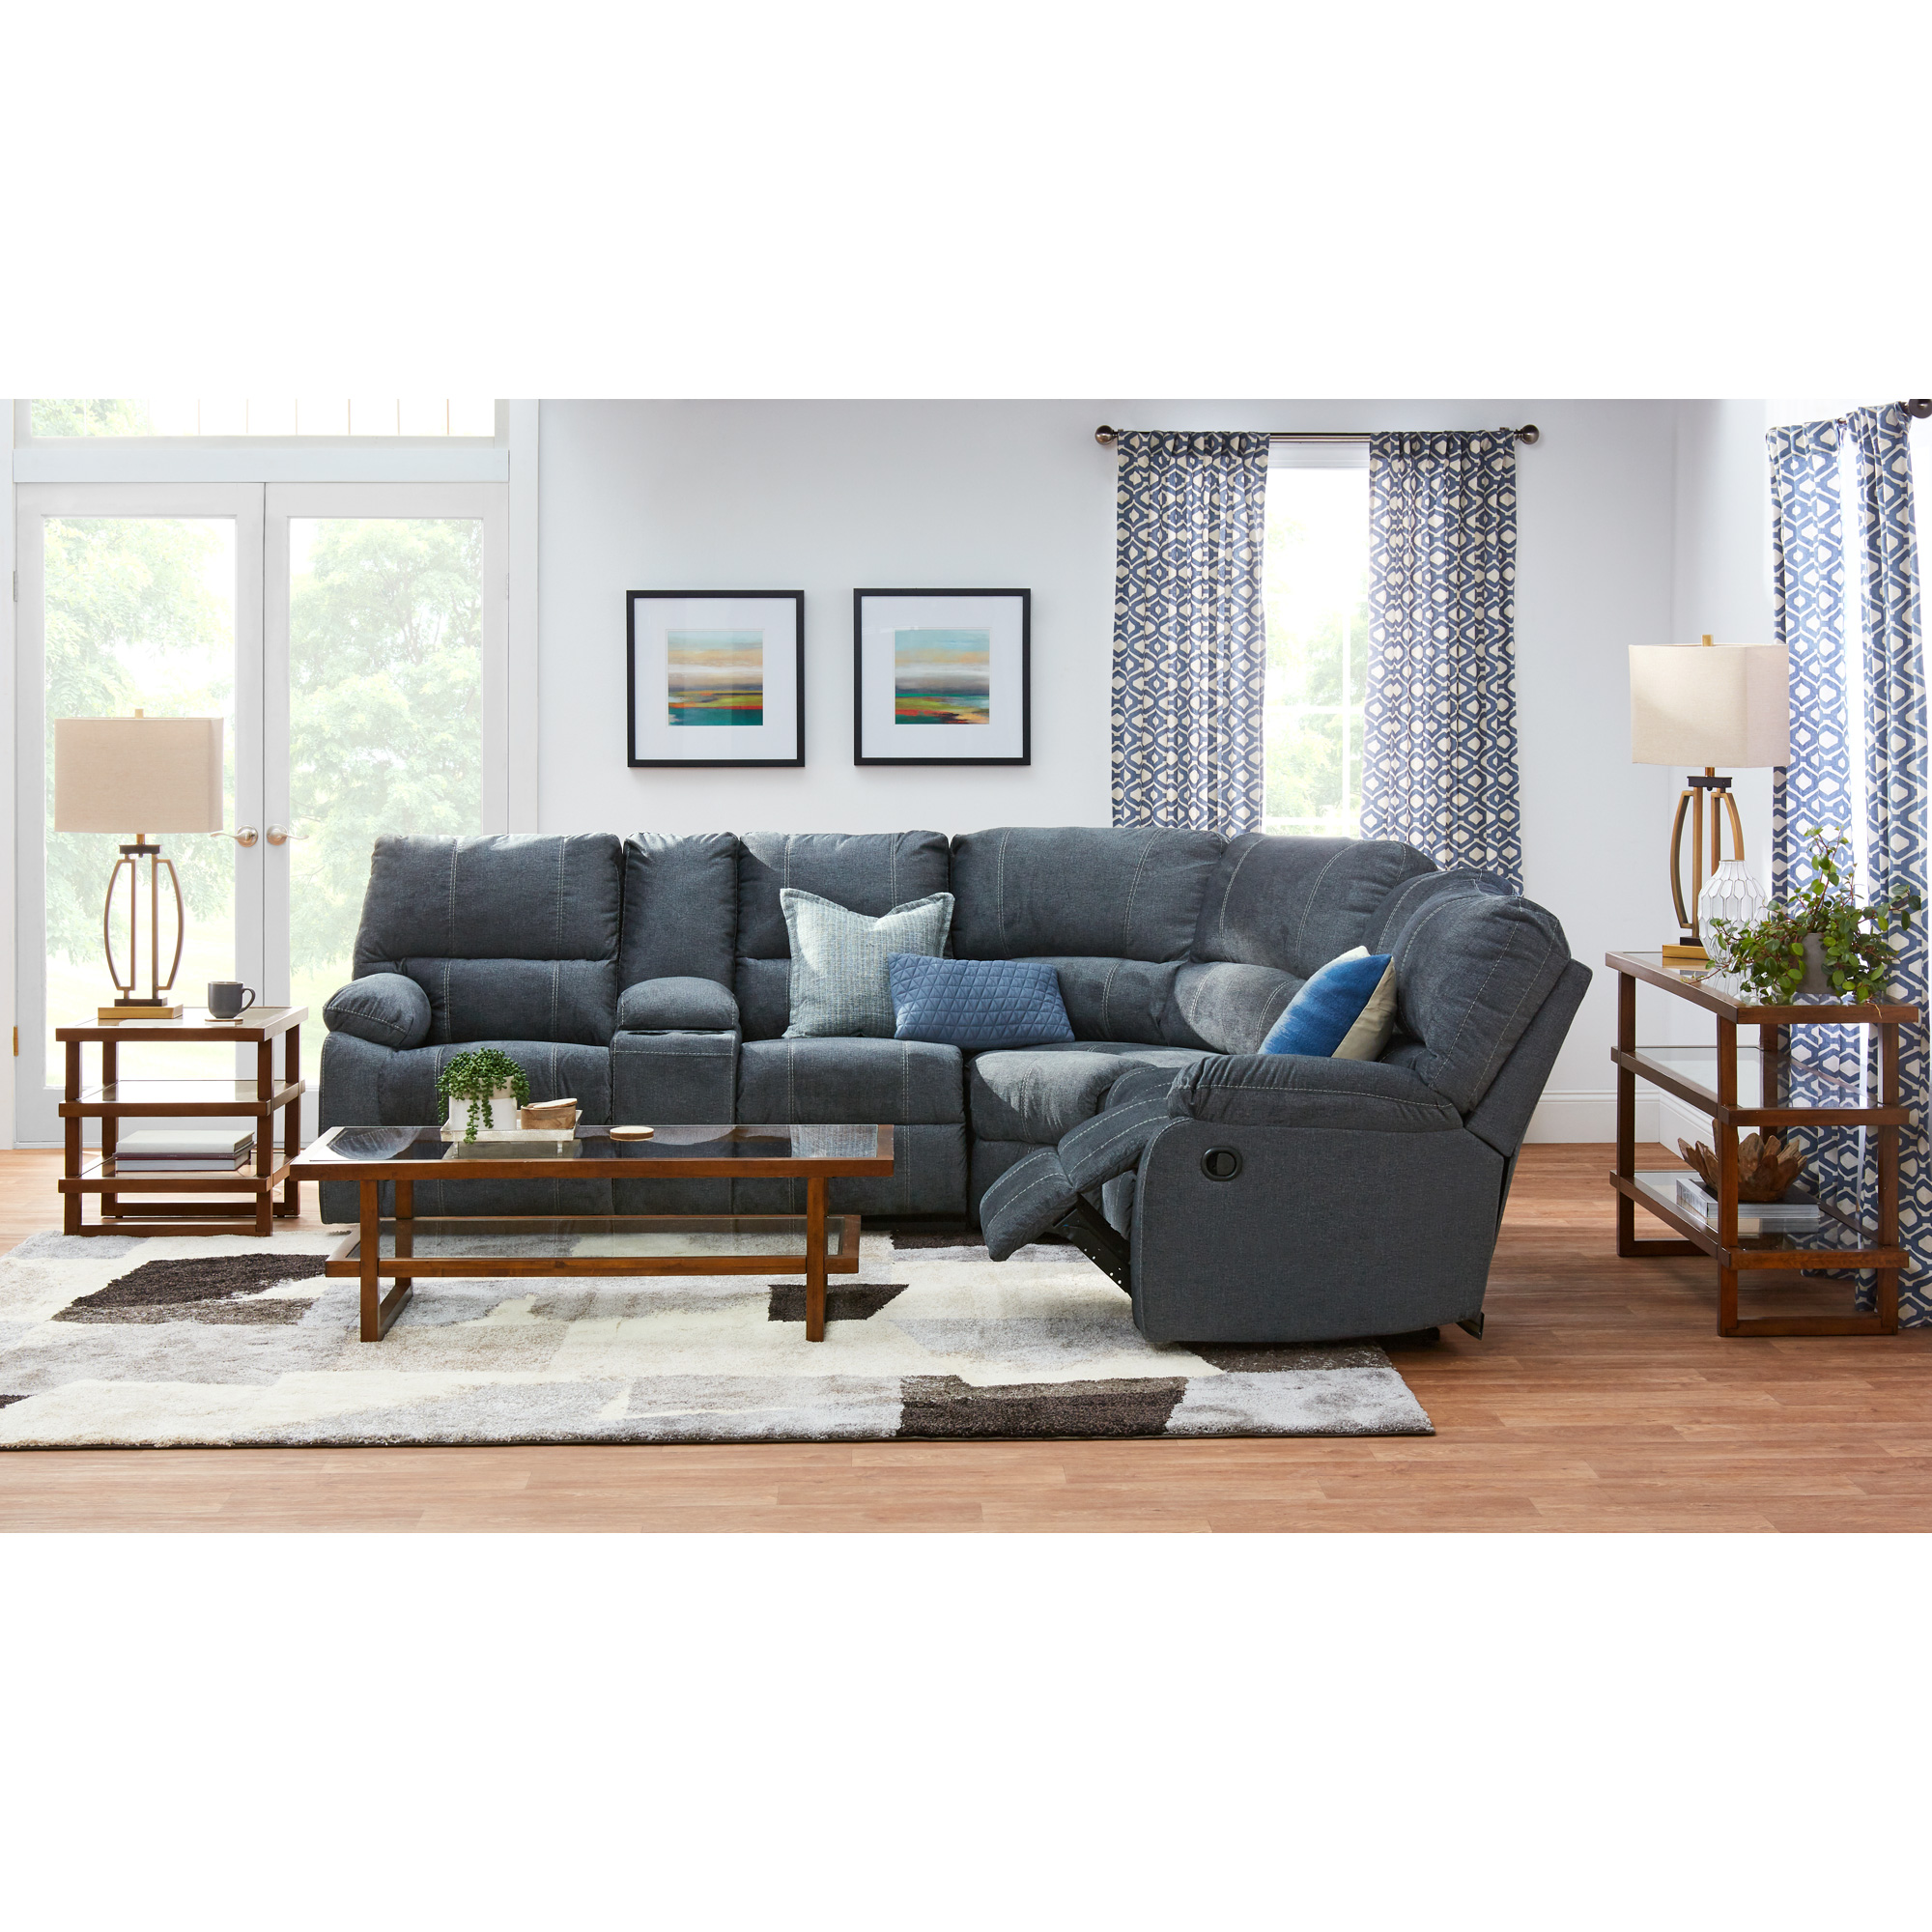 Ashley Furniture Bedford Charcoal 3 Piece Reclining Sectional Sofa Ibt Shop